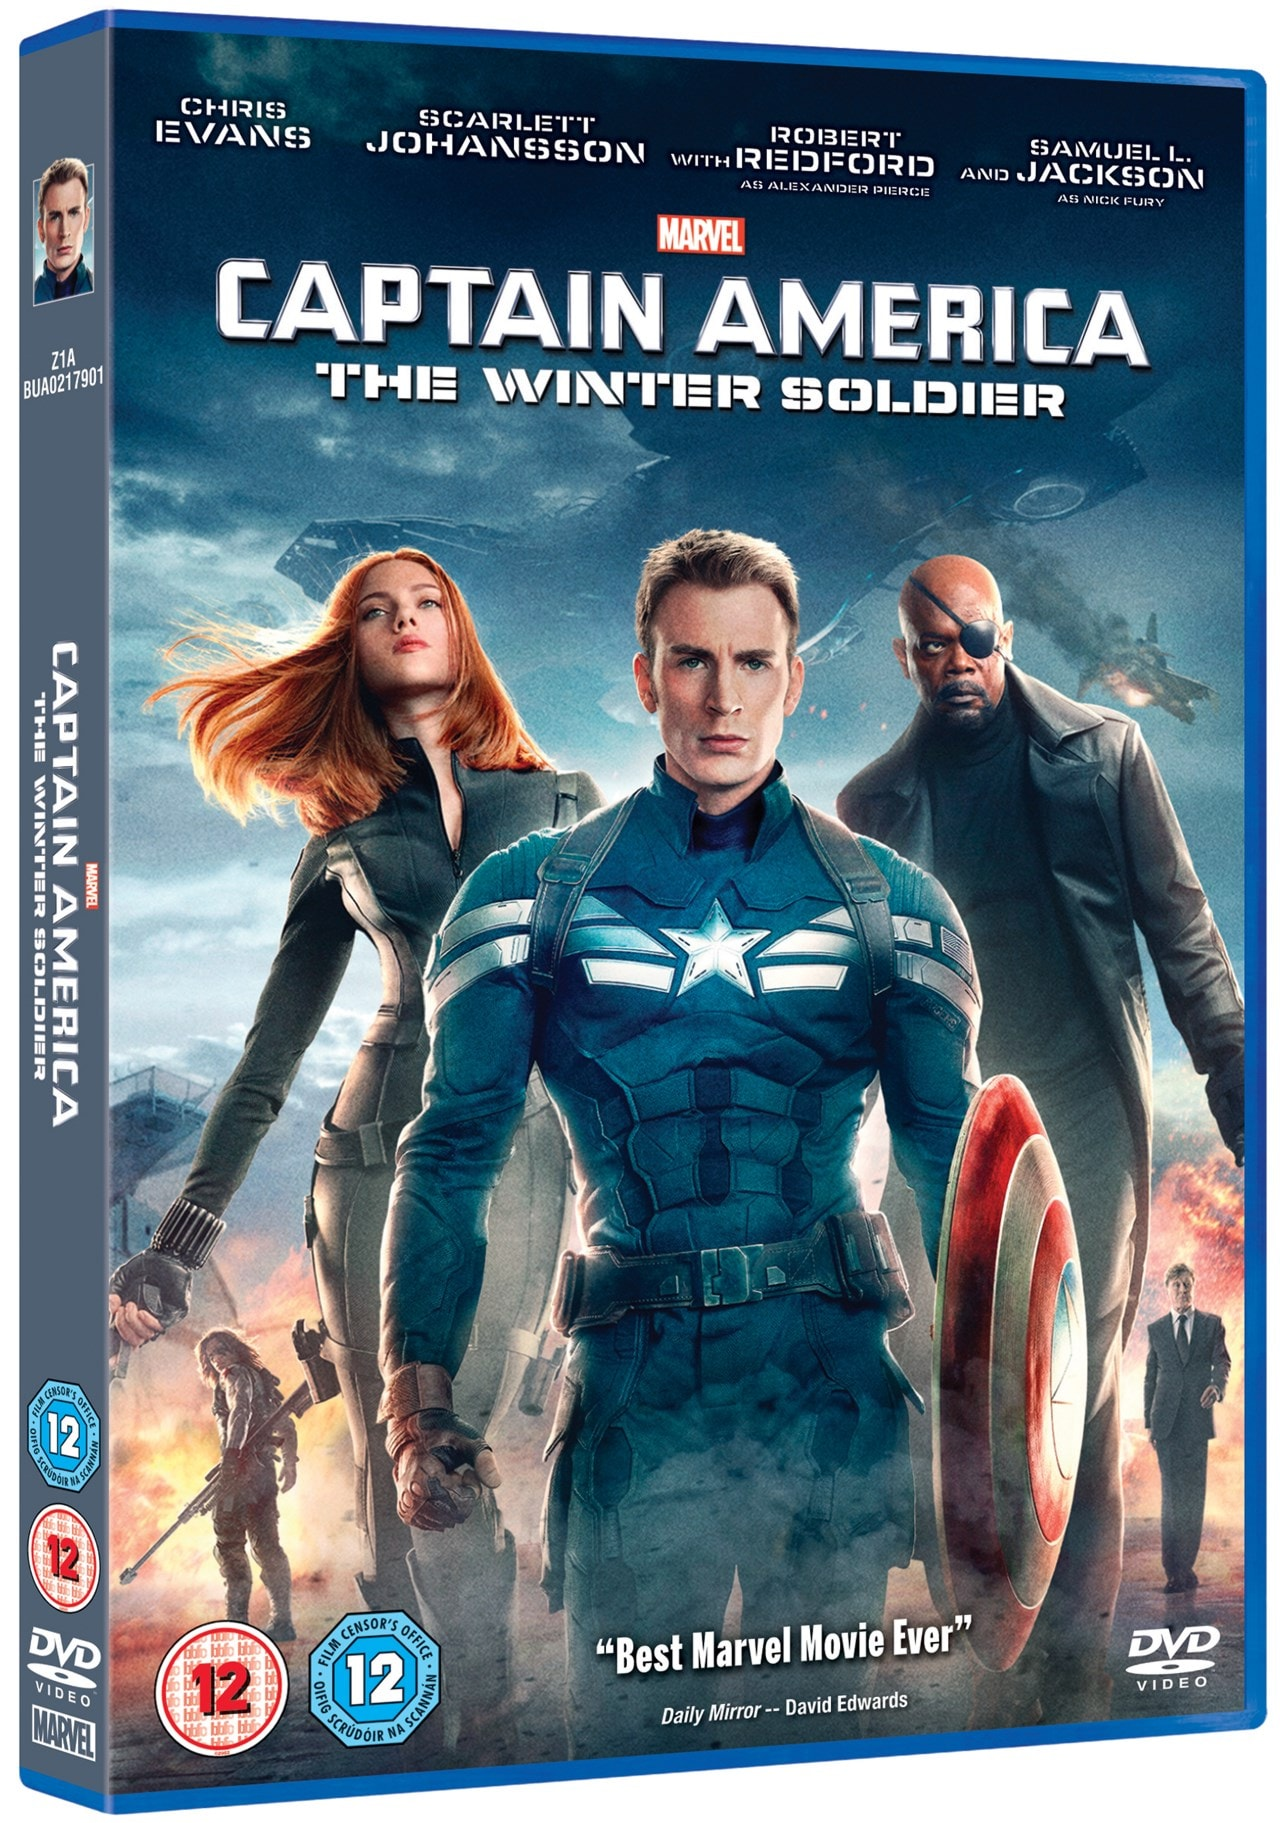 Captain America: The Winter Soldier - 4